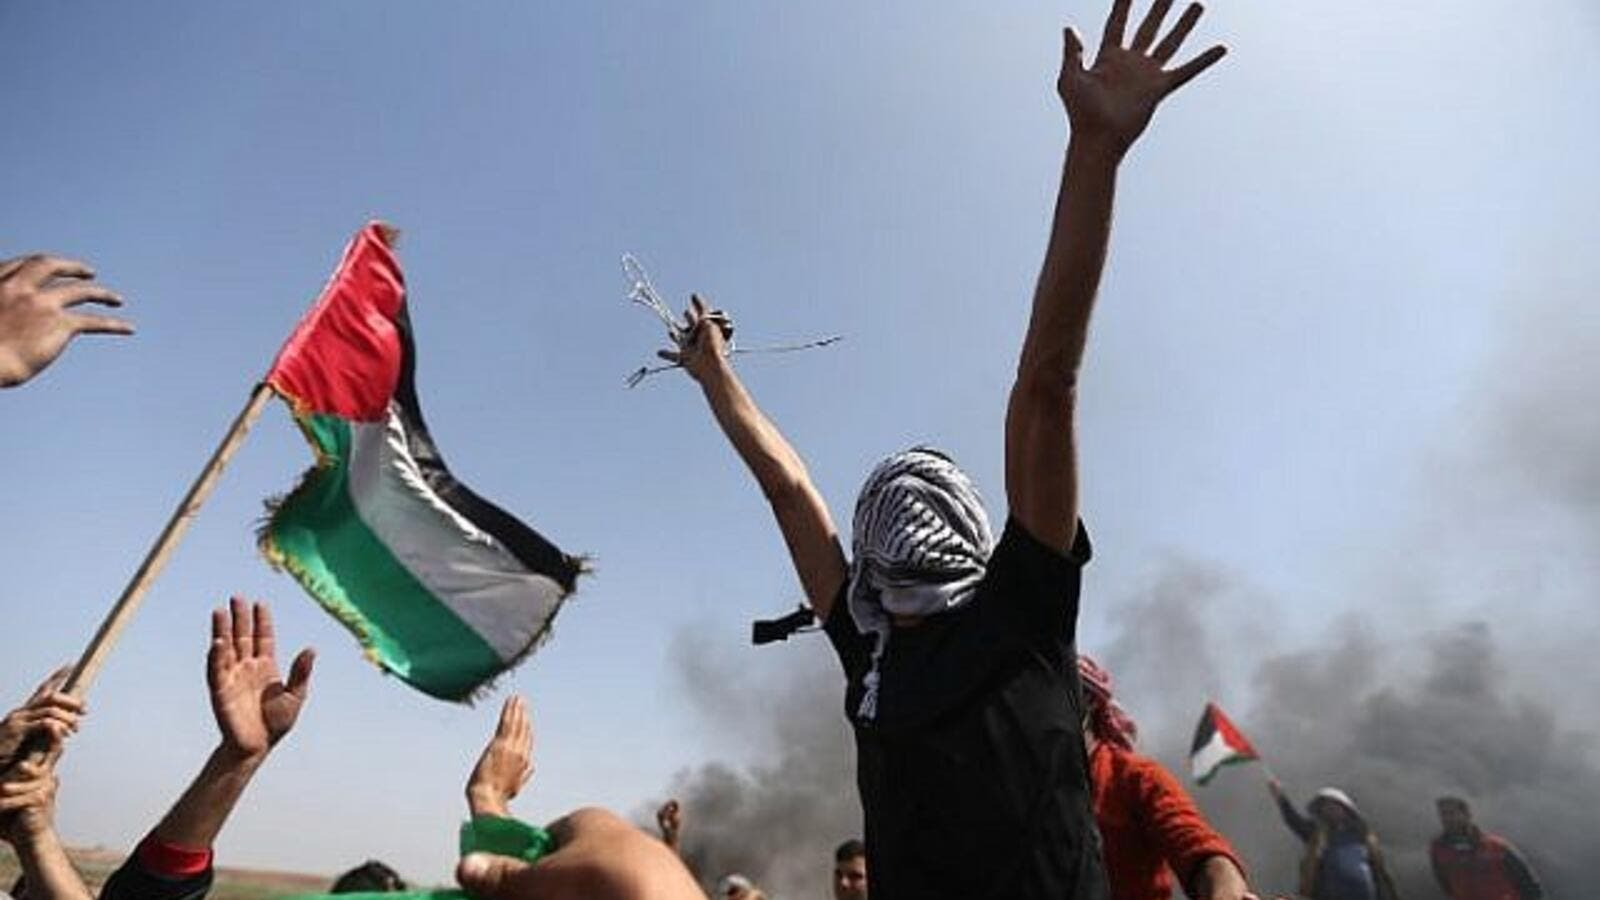 Palestinian demonstrators wave their national flag and shout slogans against Israeli army during protest on the Israel-Gaza border in Gaza Strip. (AFP/Mohammed Abed)